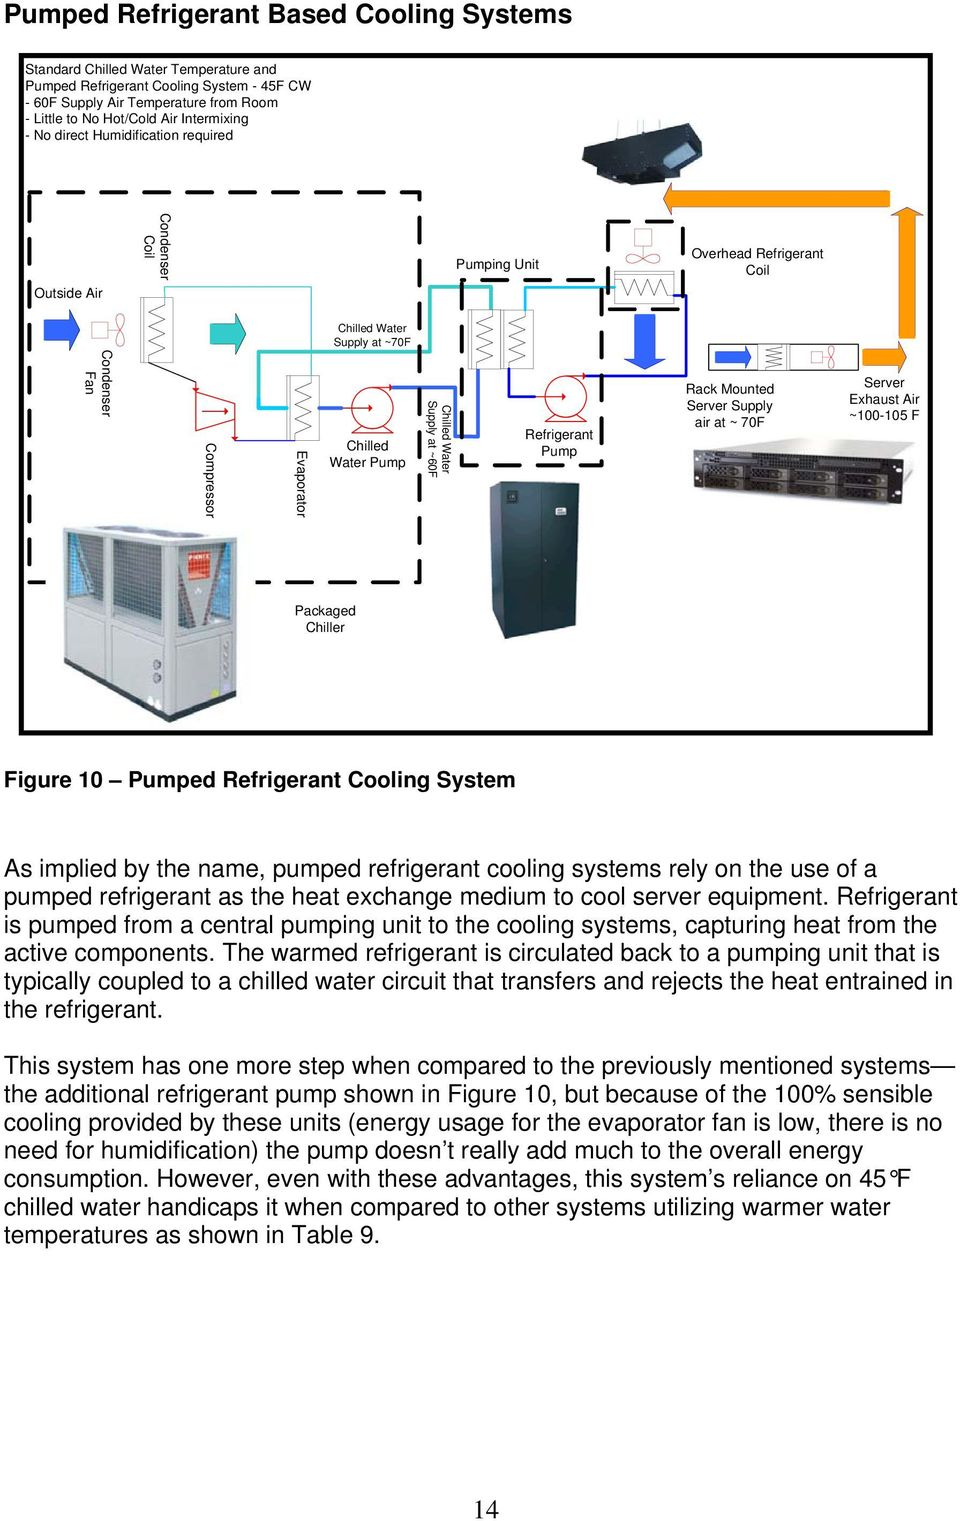 70F Server Exhaust Air ~100-105 F Packaged Chiller Figure 10 Pumped Refrigerant Cooling System As implied by the name, pumped refrigerant cooling systems rely on the use of a pumped refrigerant as